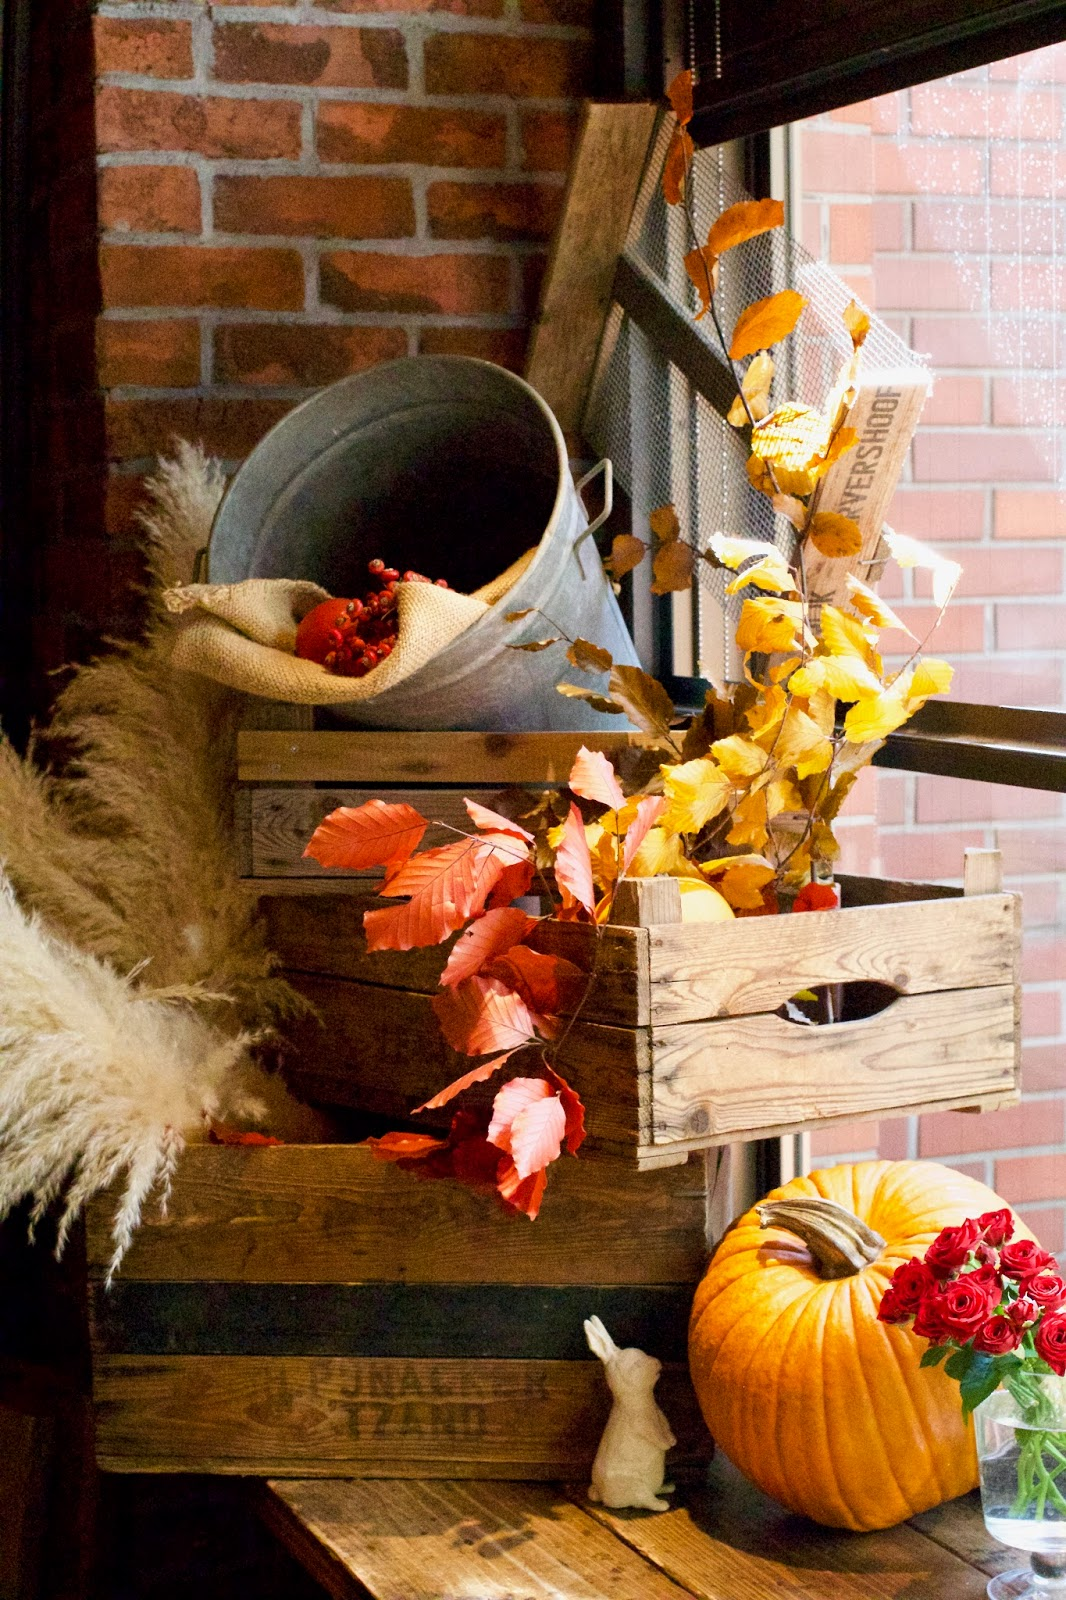 Aoyama-Flower-Market-Tea-House-decor-autumnal-fall-pumpkin-seasonal